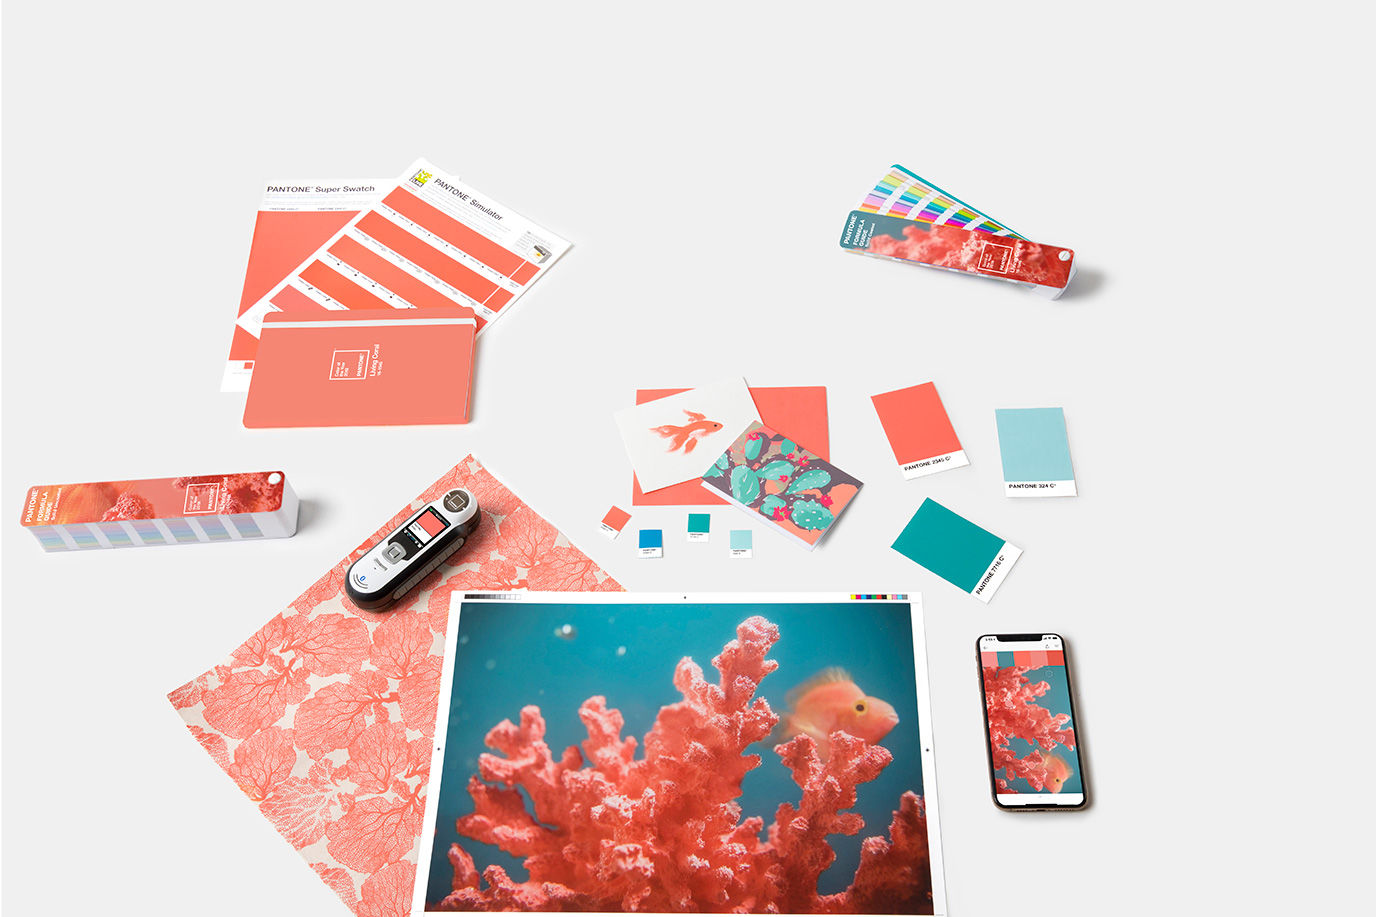 Pantone takes deep dive for color of the year